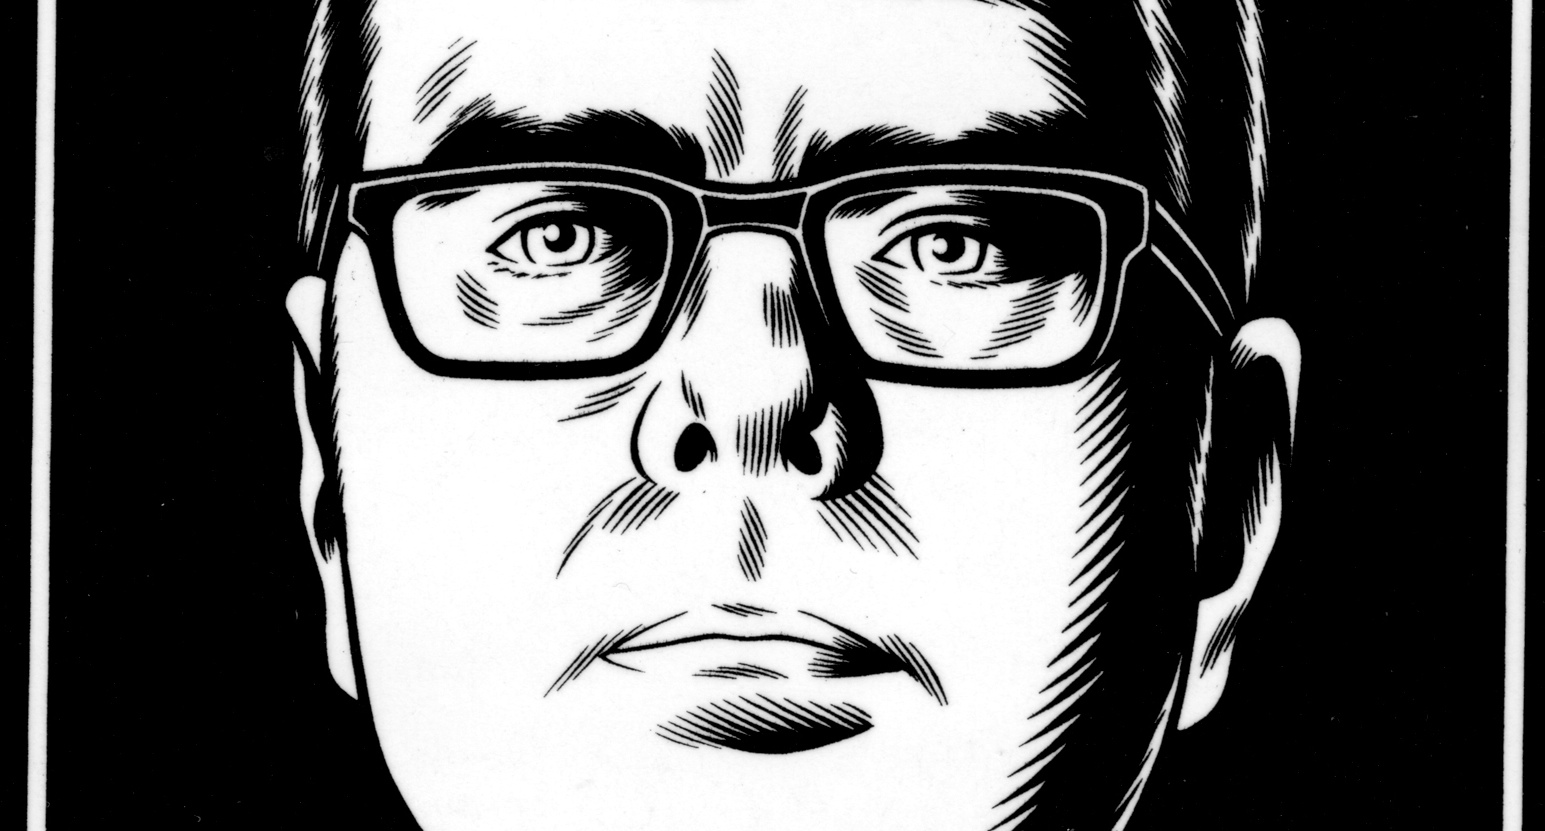 charles burns brings his haunting cartoon trilogy to a close with